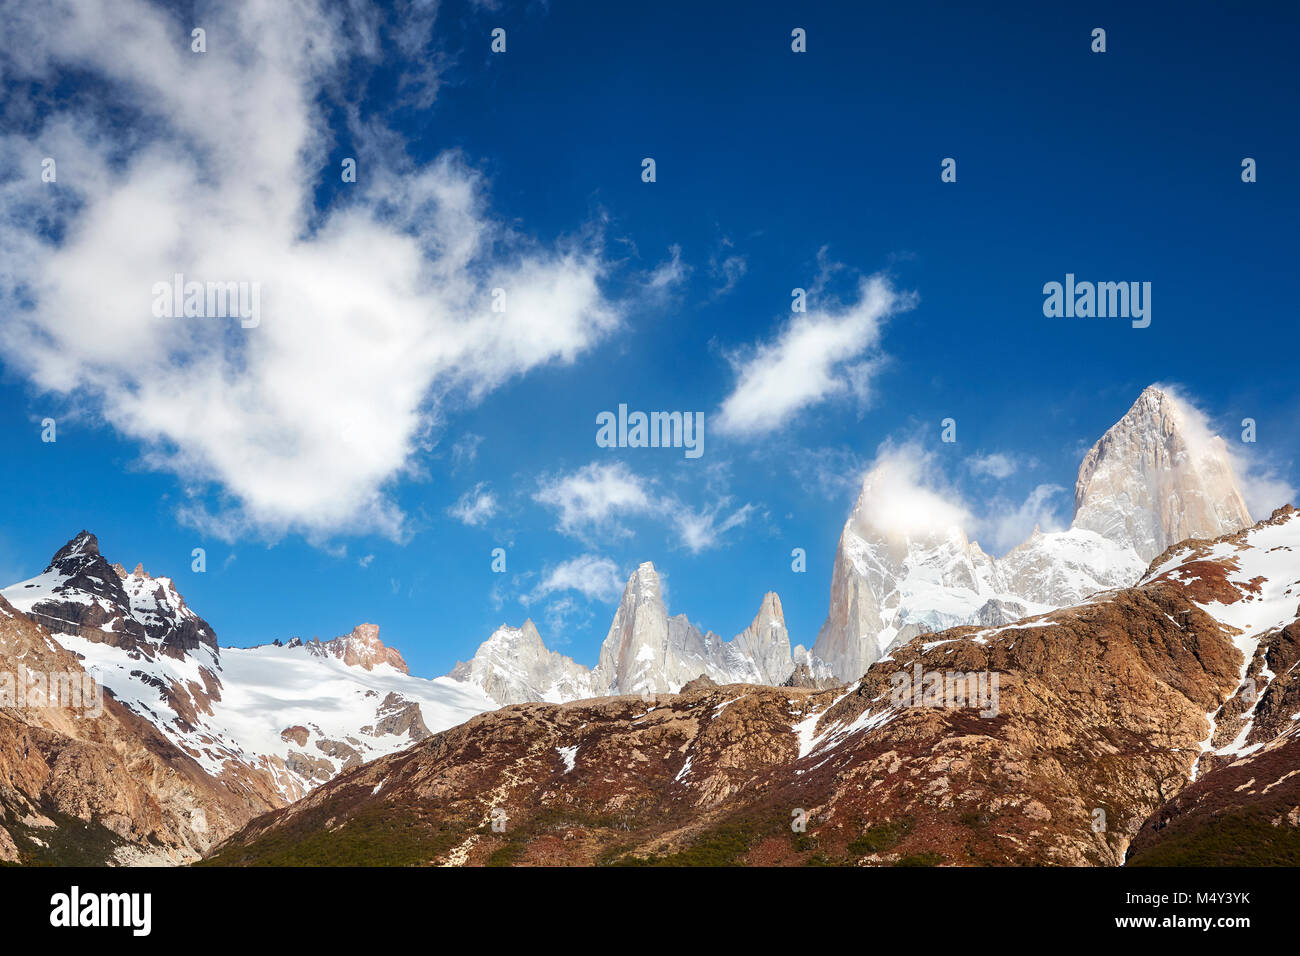 Fitz Roy Mountain Range, Los Glaciares National Park, Argentina. - Stock Image